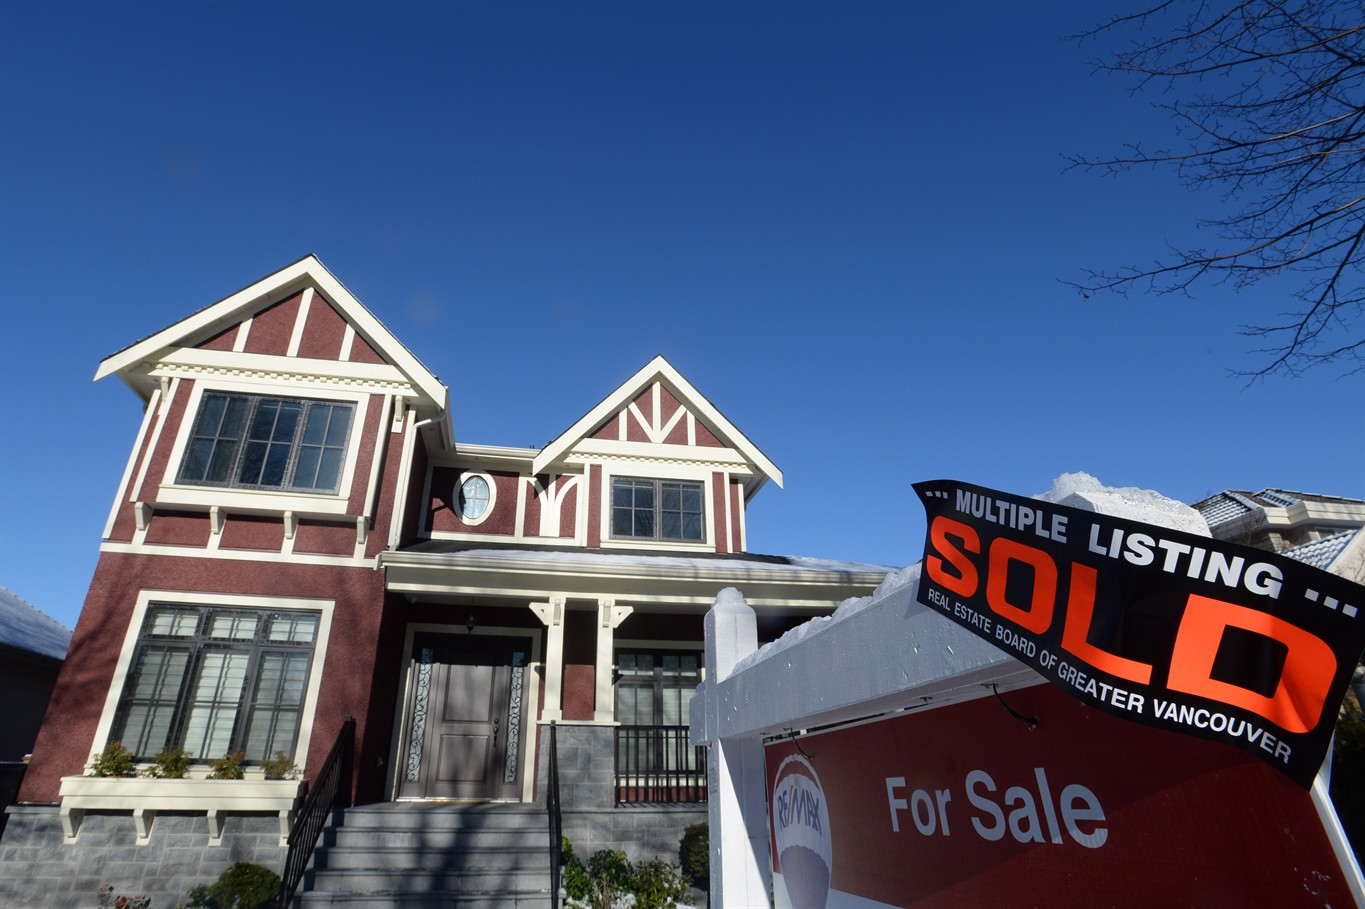 Buyer/seller Standoff Behind Vancouver Real Estate Sales Dip: Expert